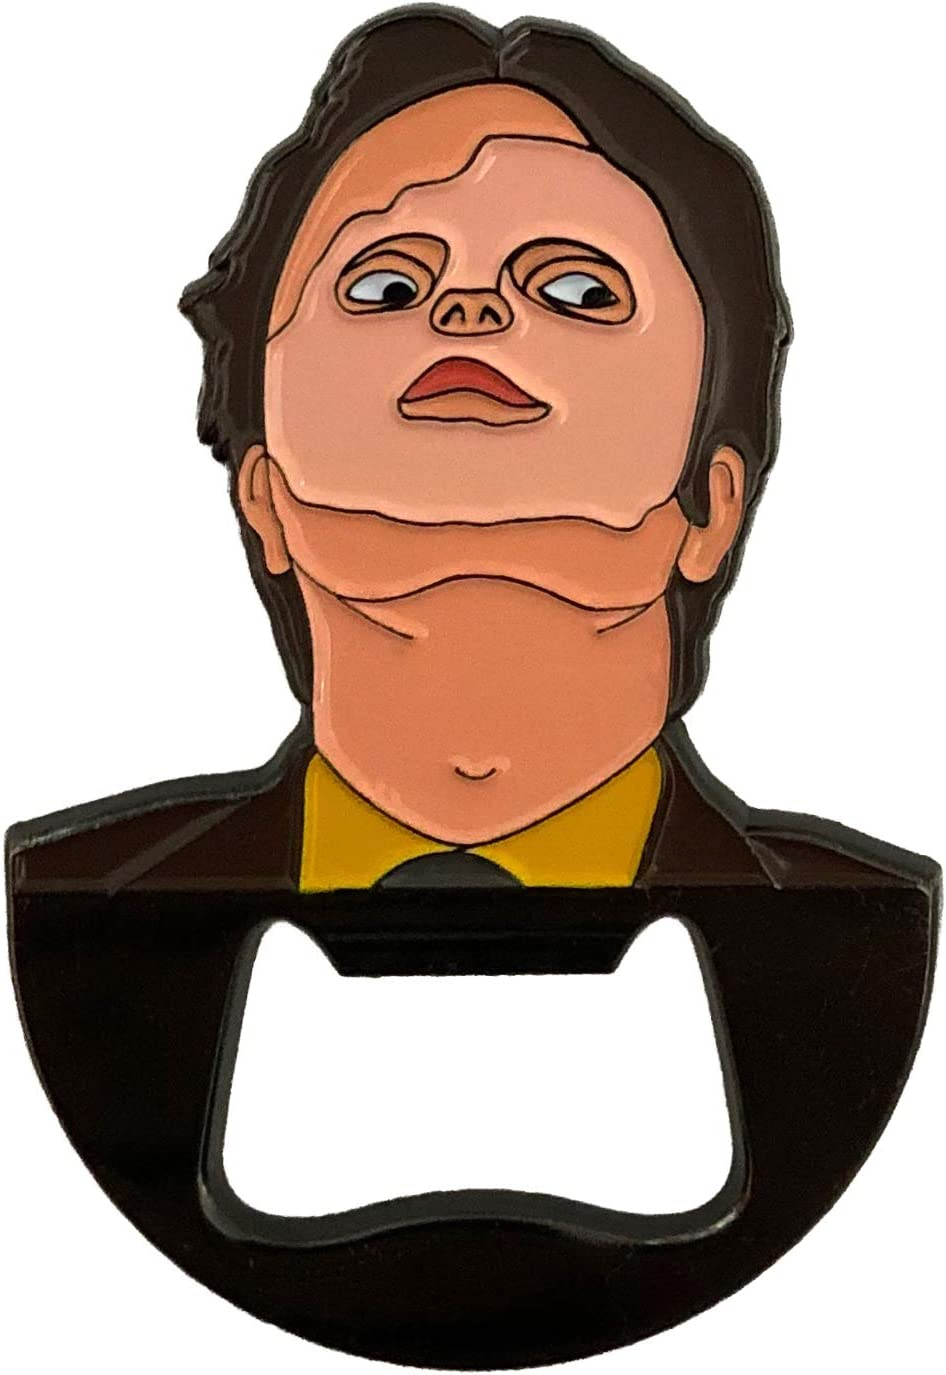 Balanced Co. Dwight Schrute Bottle Opener Dwight Schrute Beer Opener (Mask)